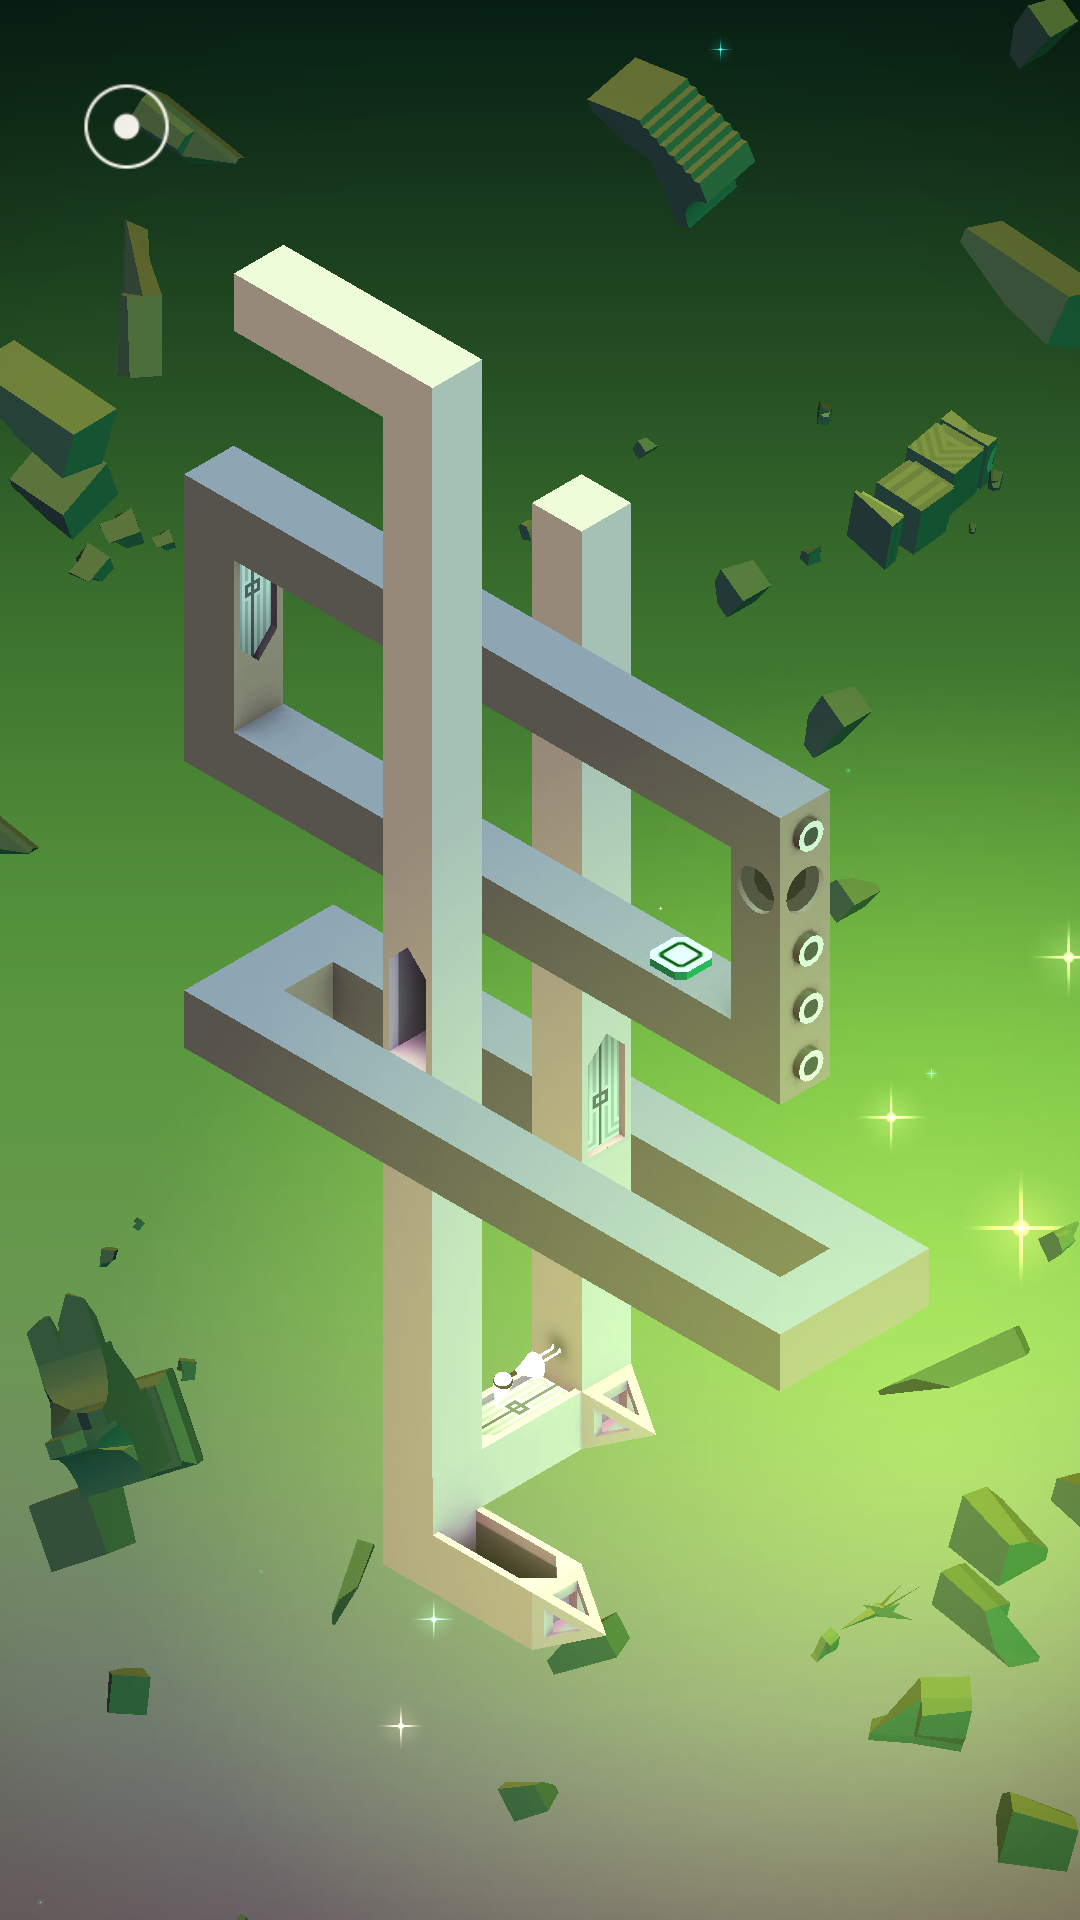 Monument Valley Review It Only Takes An Hour To Change The World